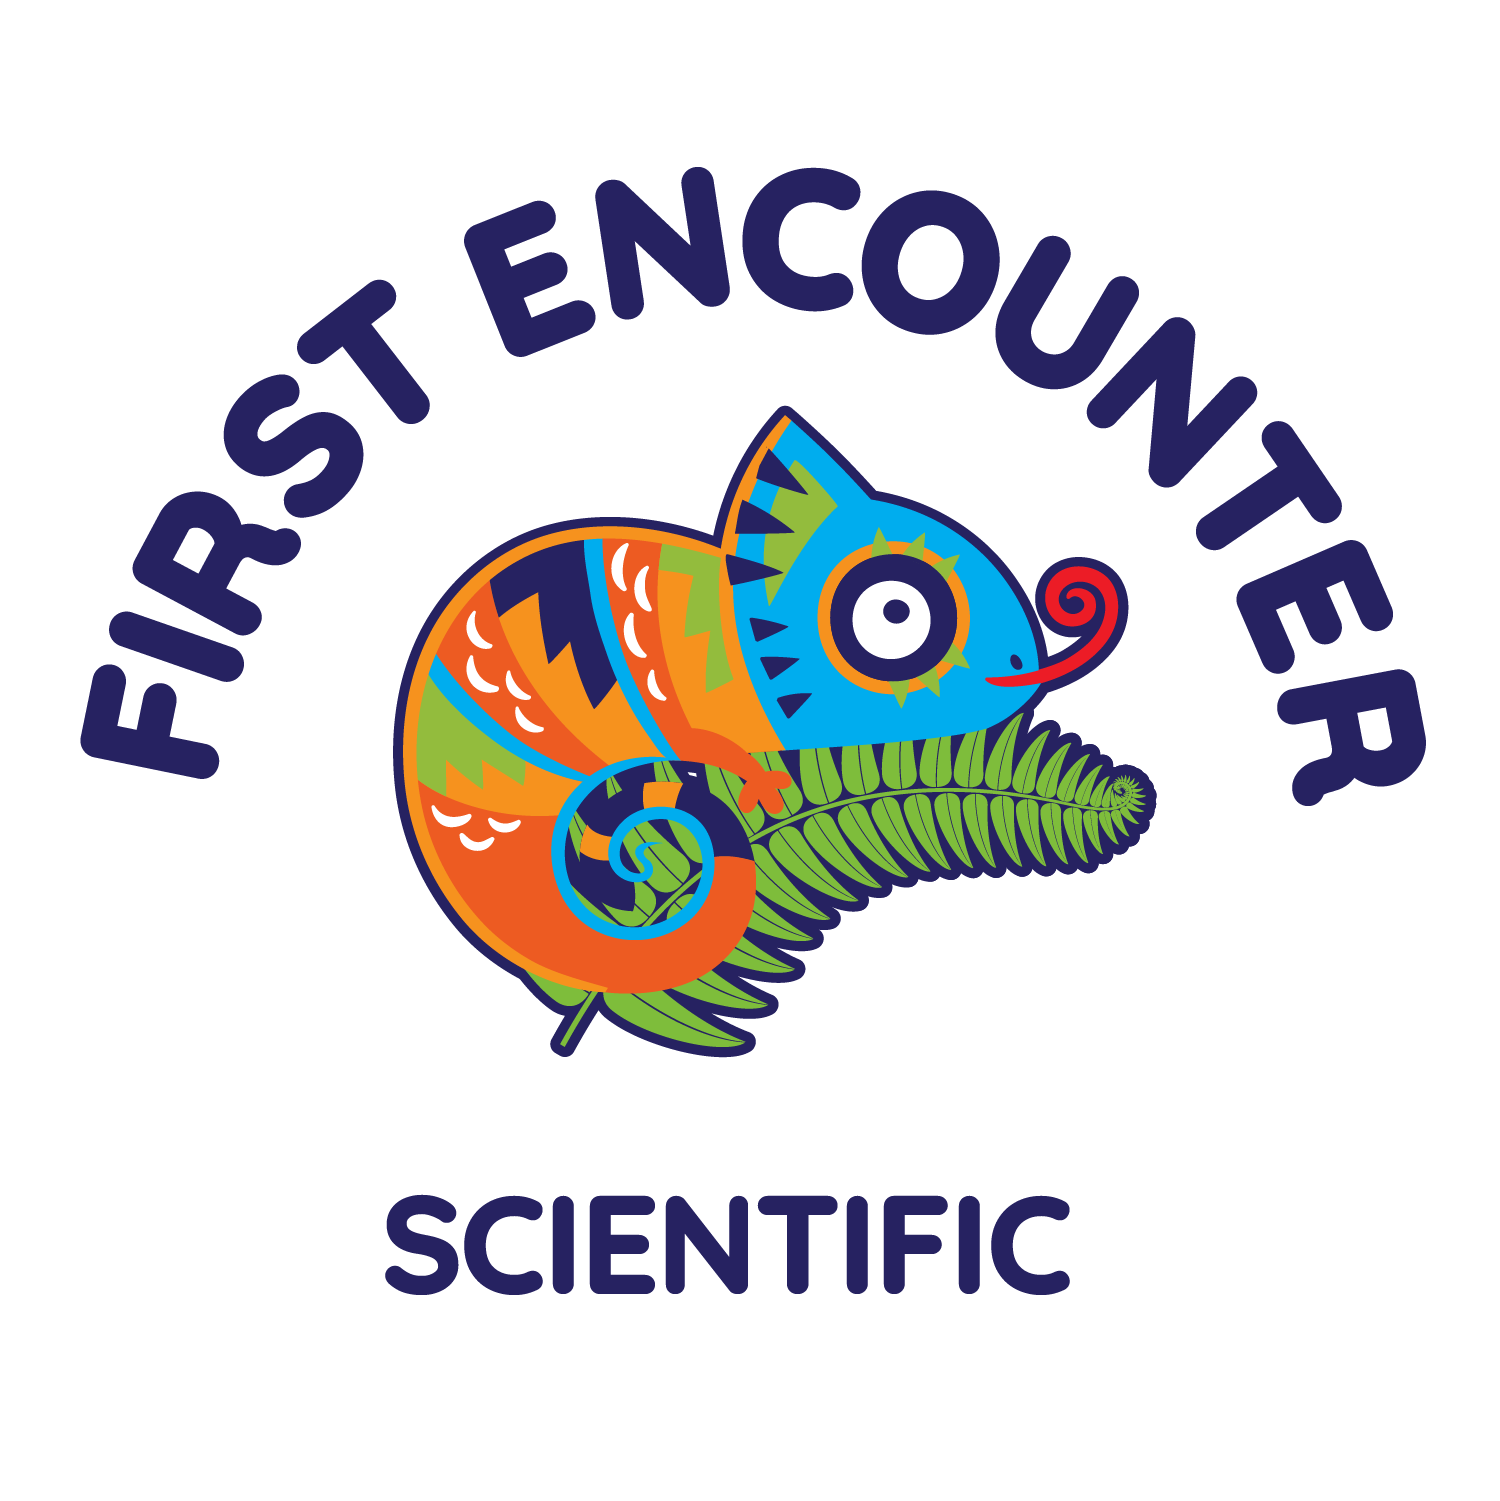 19 20 Challenge Logo First Encounter Scientific Dark RGB